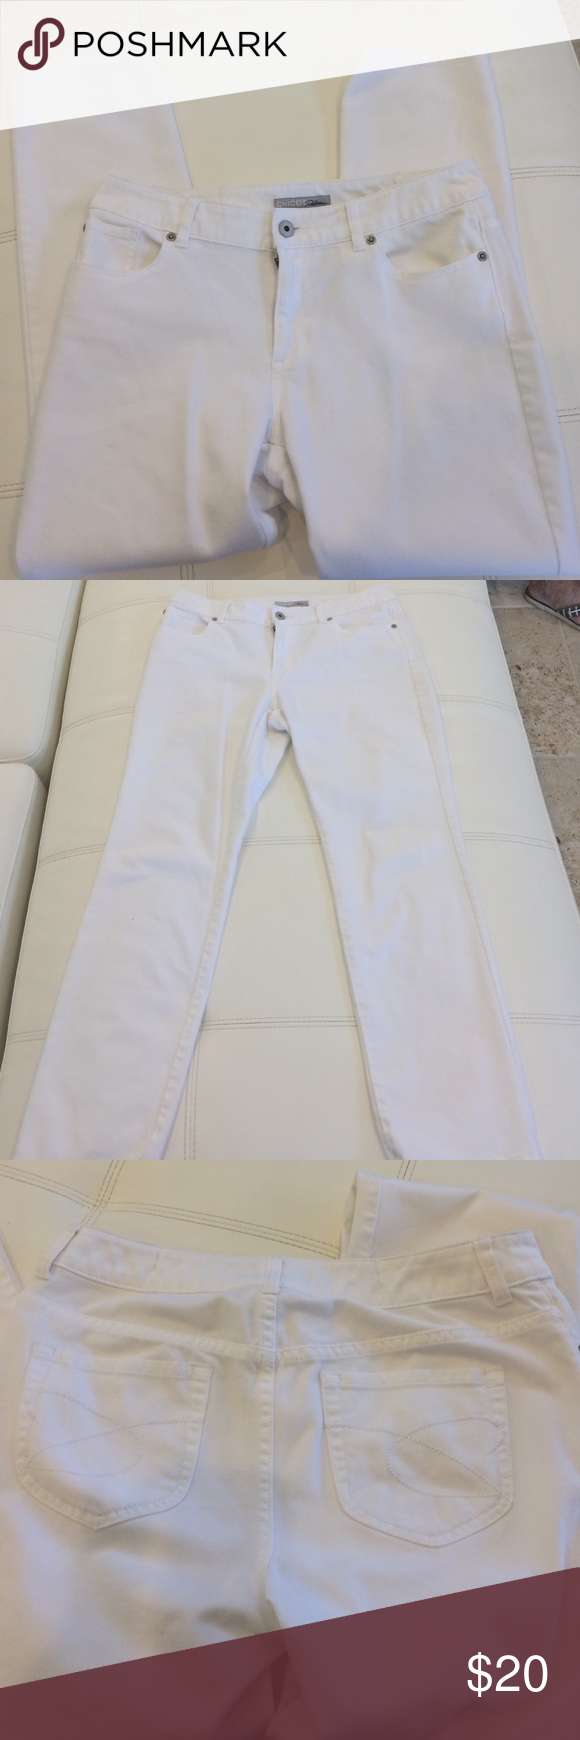 Chicos platinum jeans Chicos platinum jeans. 70% cotton 30% polyester. Chicos size 1 short. Chicos size one on their chart is equivalent to size 8.  26 inch inseam Chico's Jeans